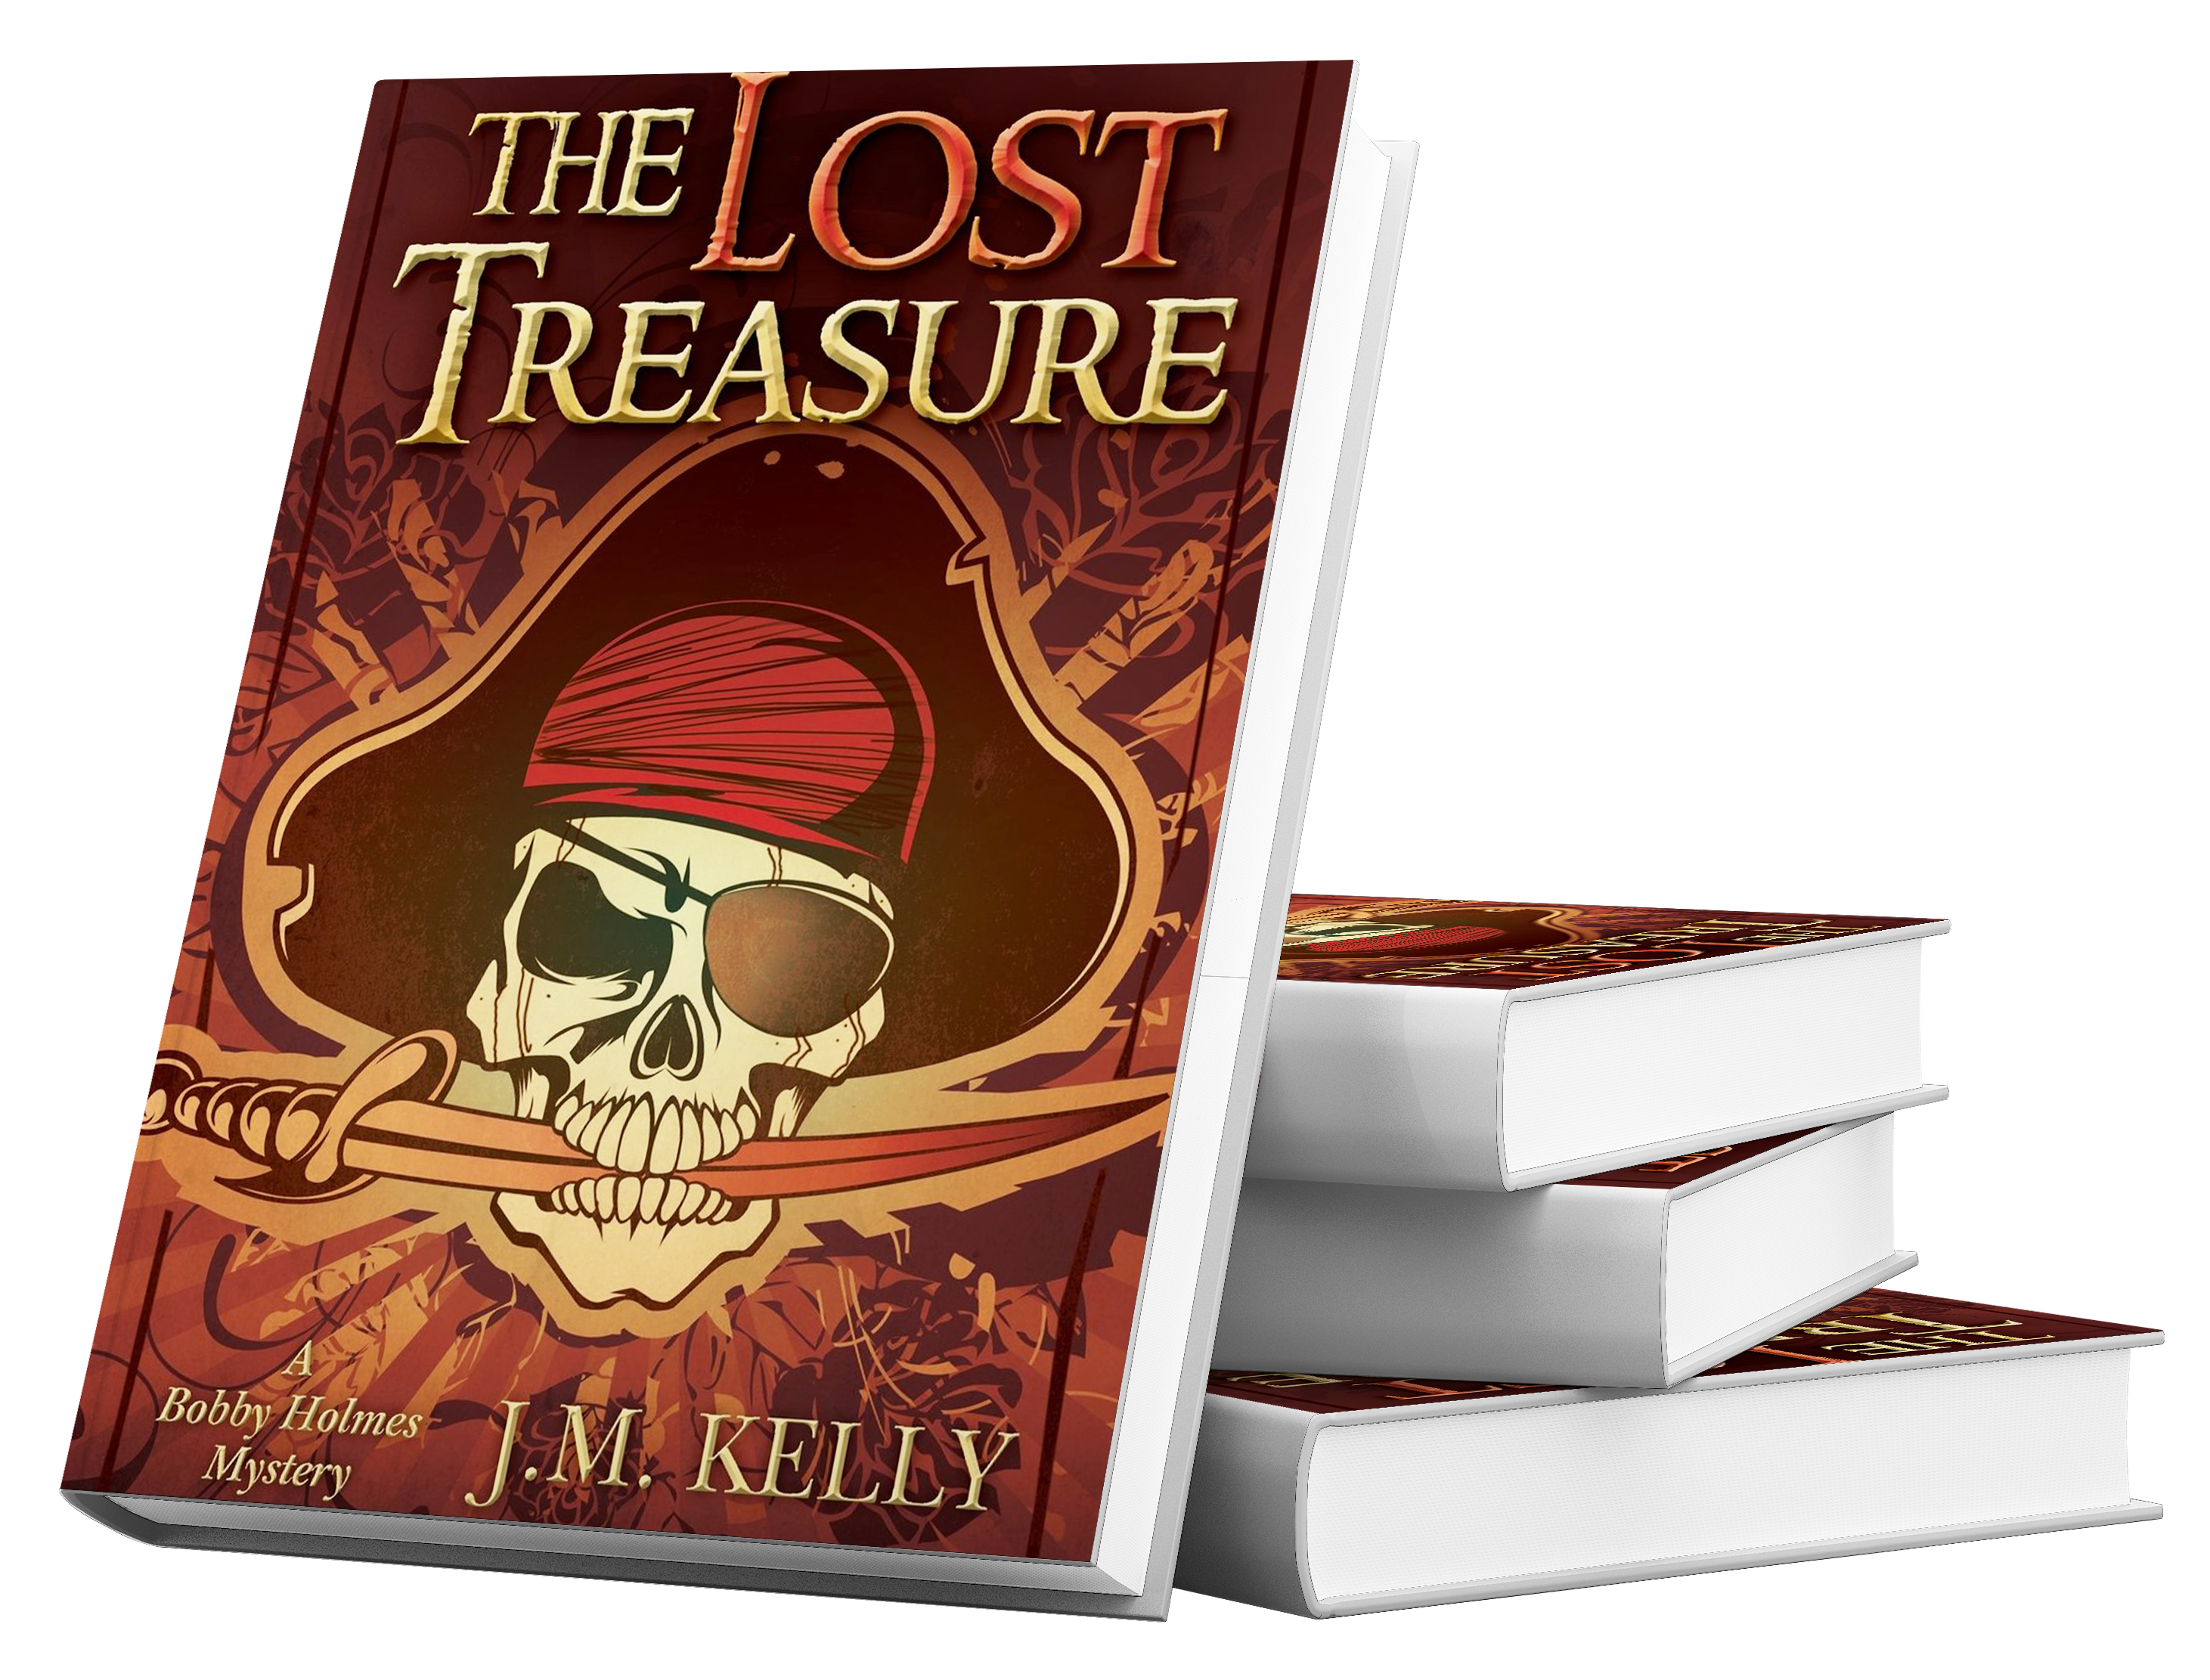 Bobby Holmes And His Mates Confront The Spirit Of A Long Dead Pirate Seeking His Buried Treasure Through The Possessed Body Of Buried Treasure Books Good Books